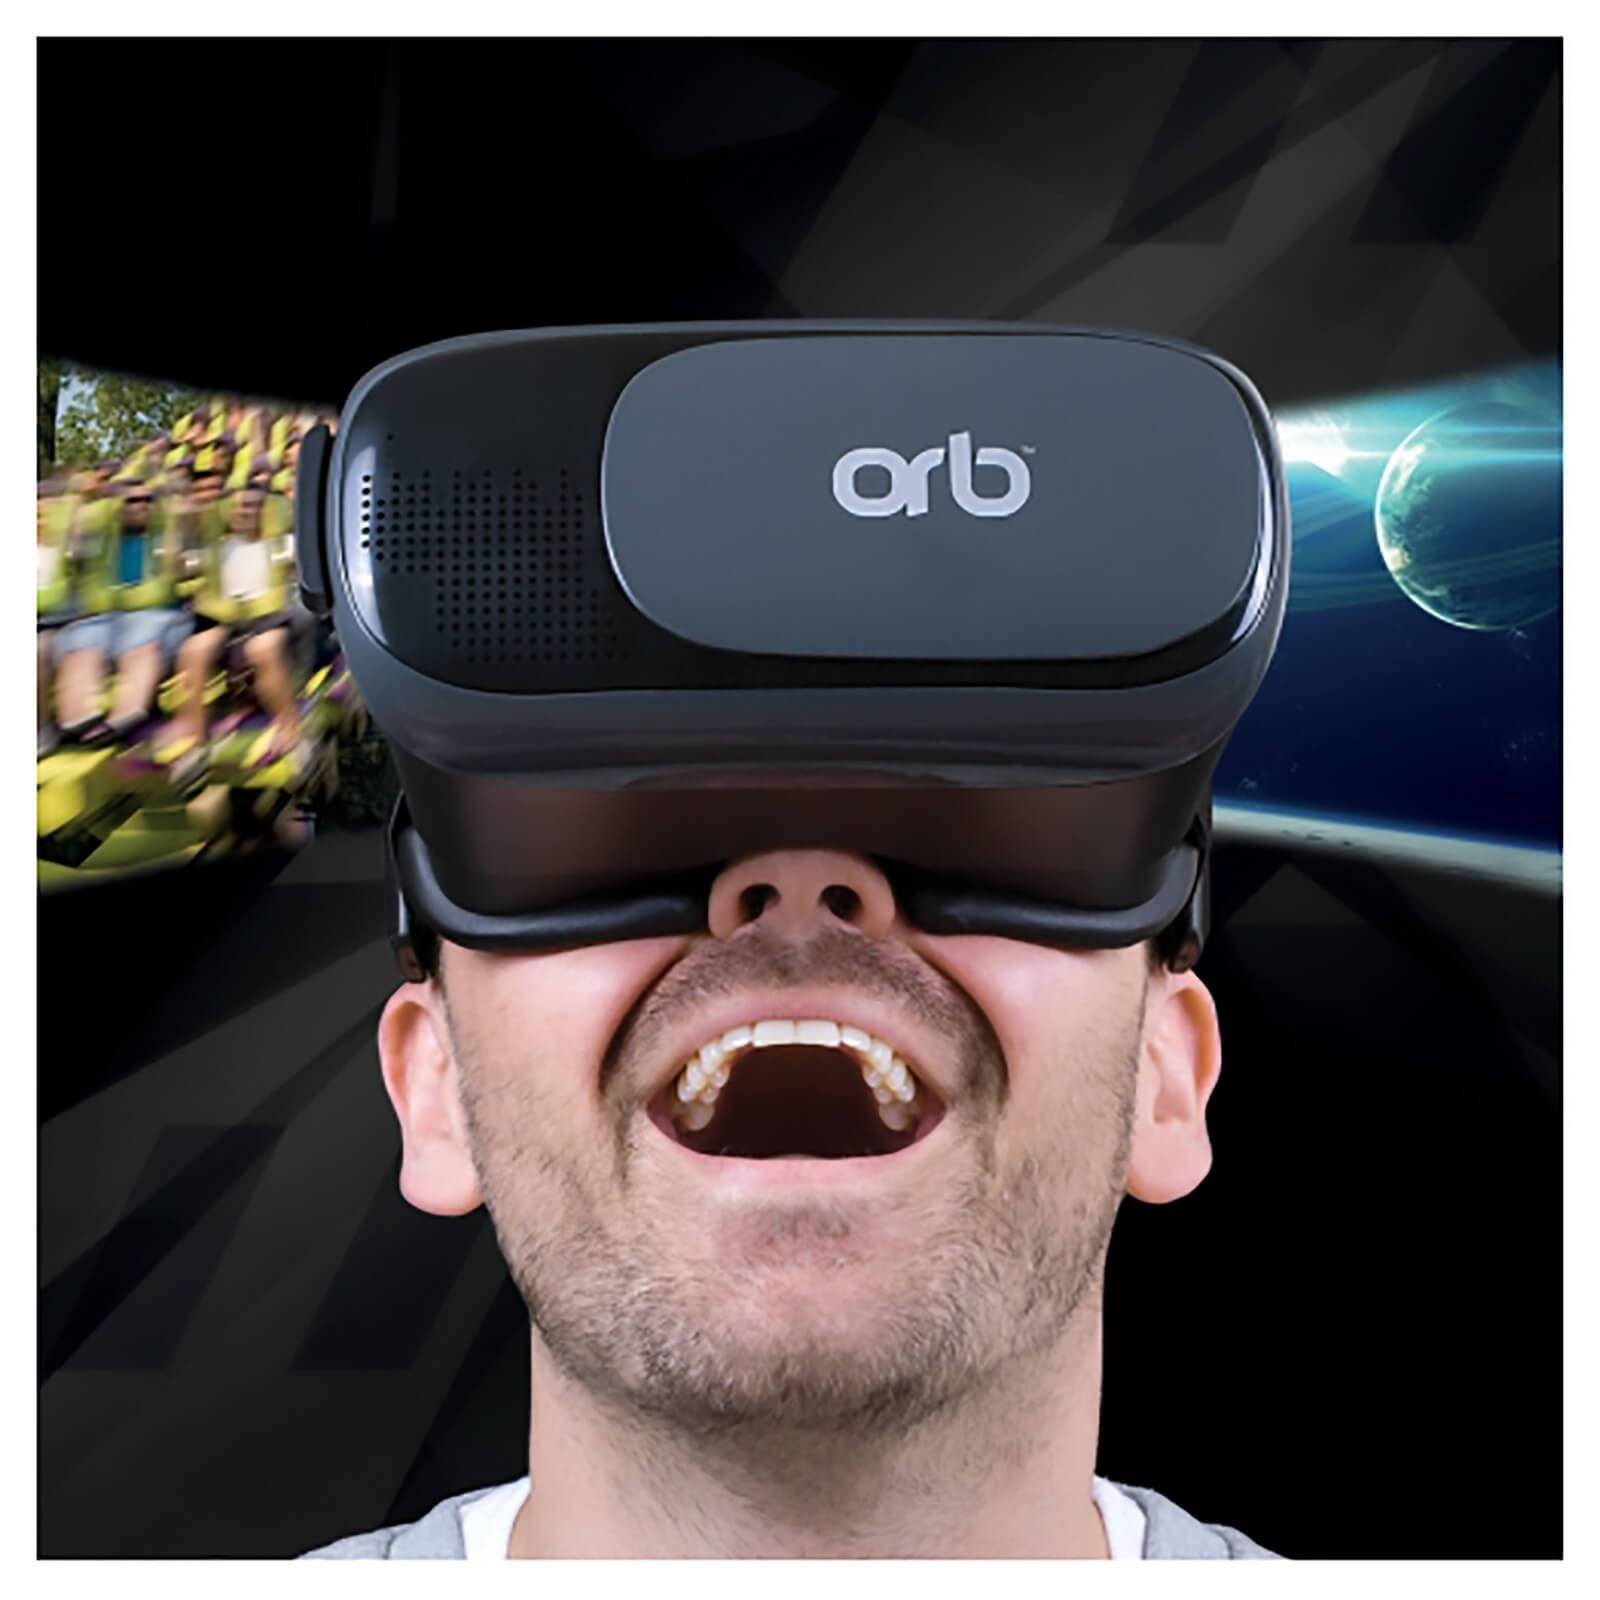 Thumbs Up Orb Virtual Reality Headset